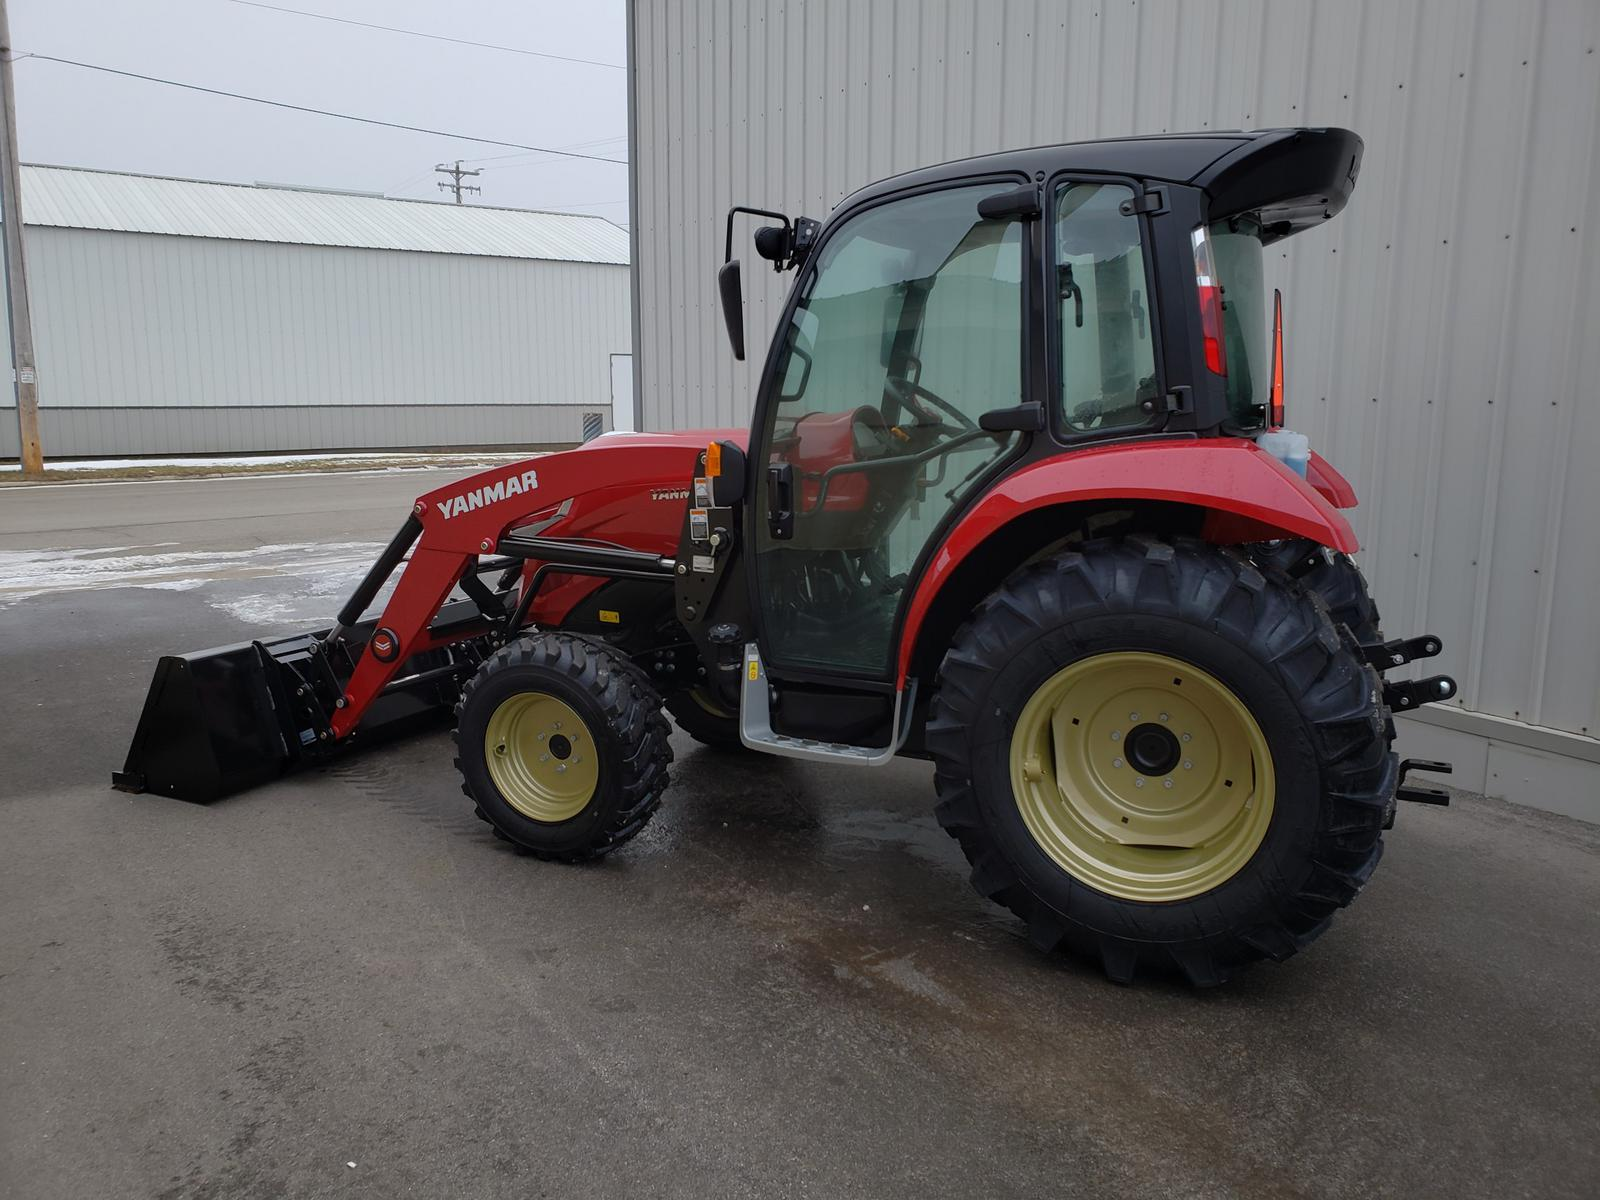 Inventory from KIOTI and Yanmar USA Luxemburg Implement Co